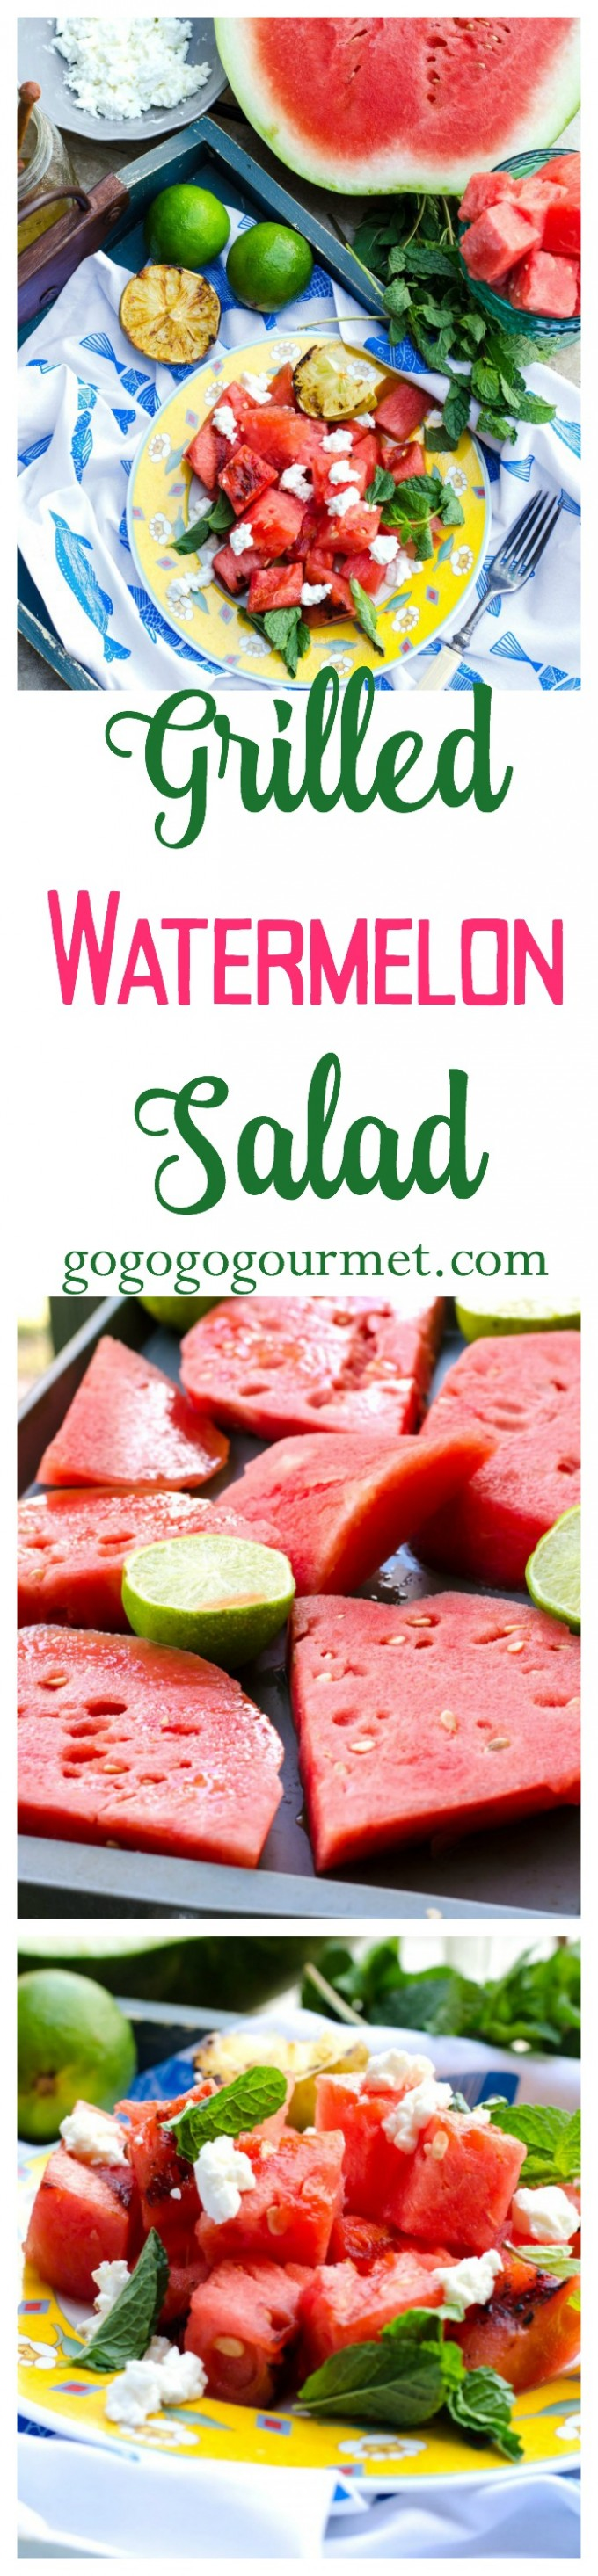 Fresh watermelon is the perfect sign that summer is here! Try this new twist on it- charred on the grill, with goat cheese, honey, lime and mint! Grilled Watermelon Salad | Go Go Go Gourmet @Go Go Go Gourmet